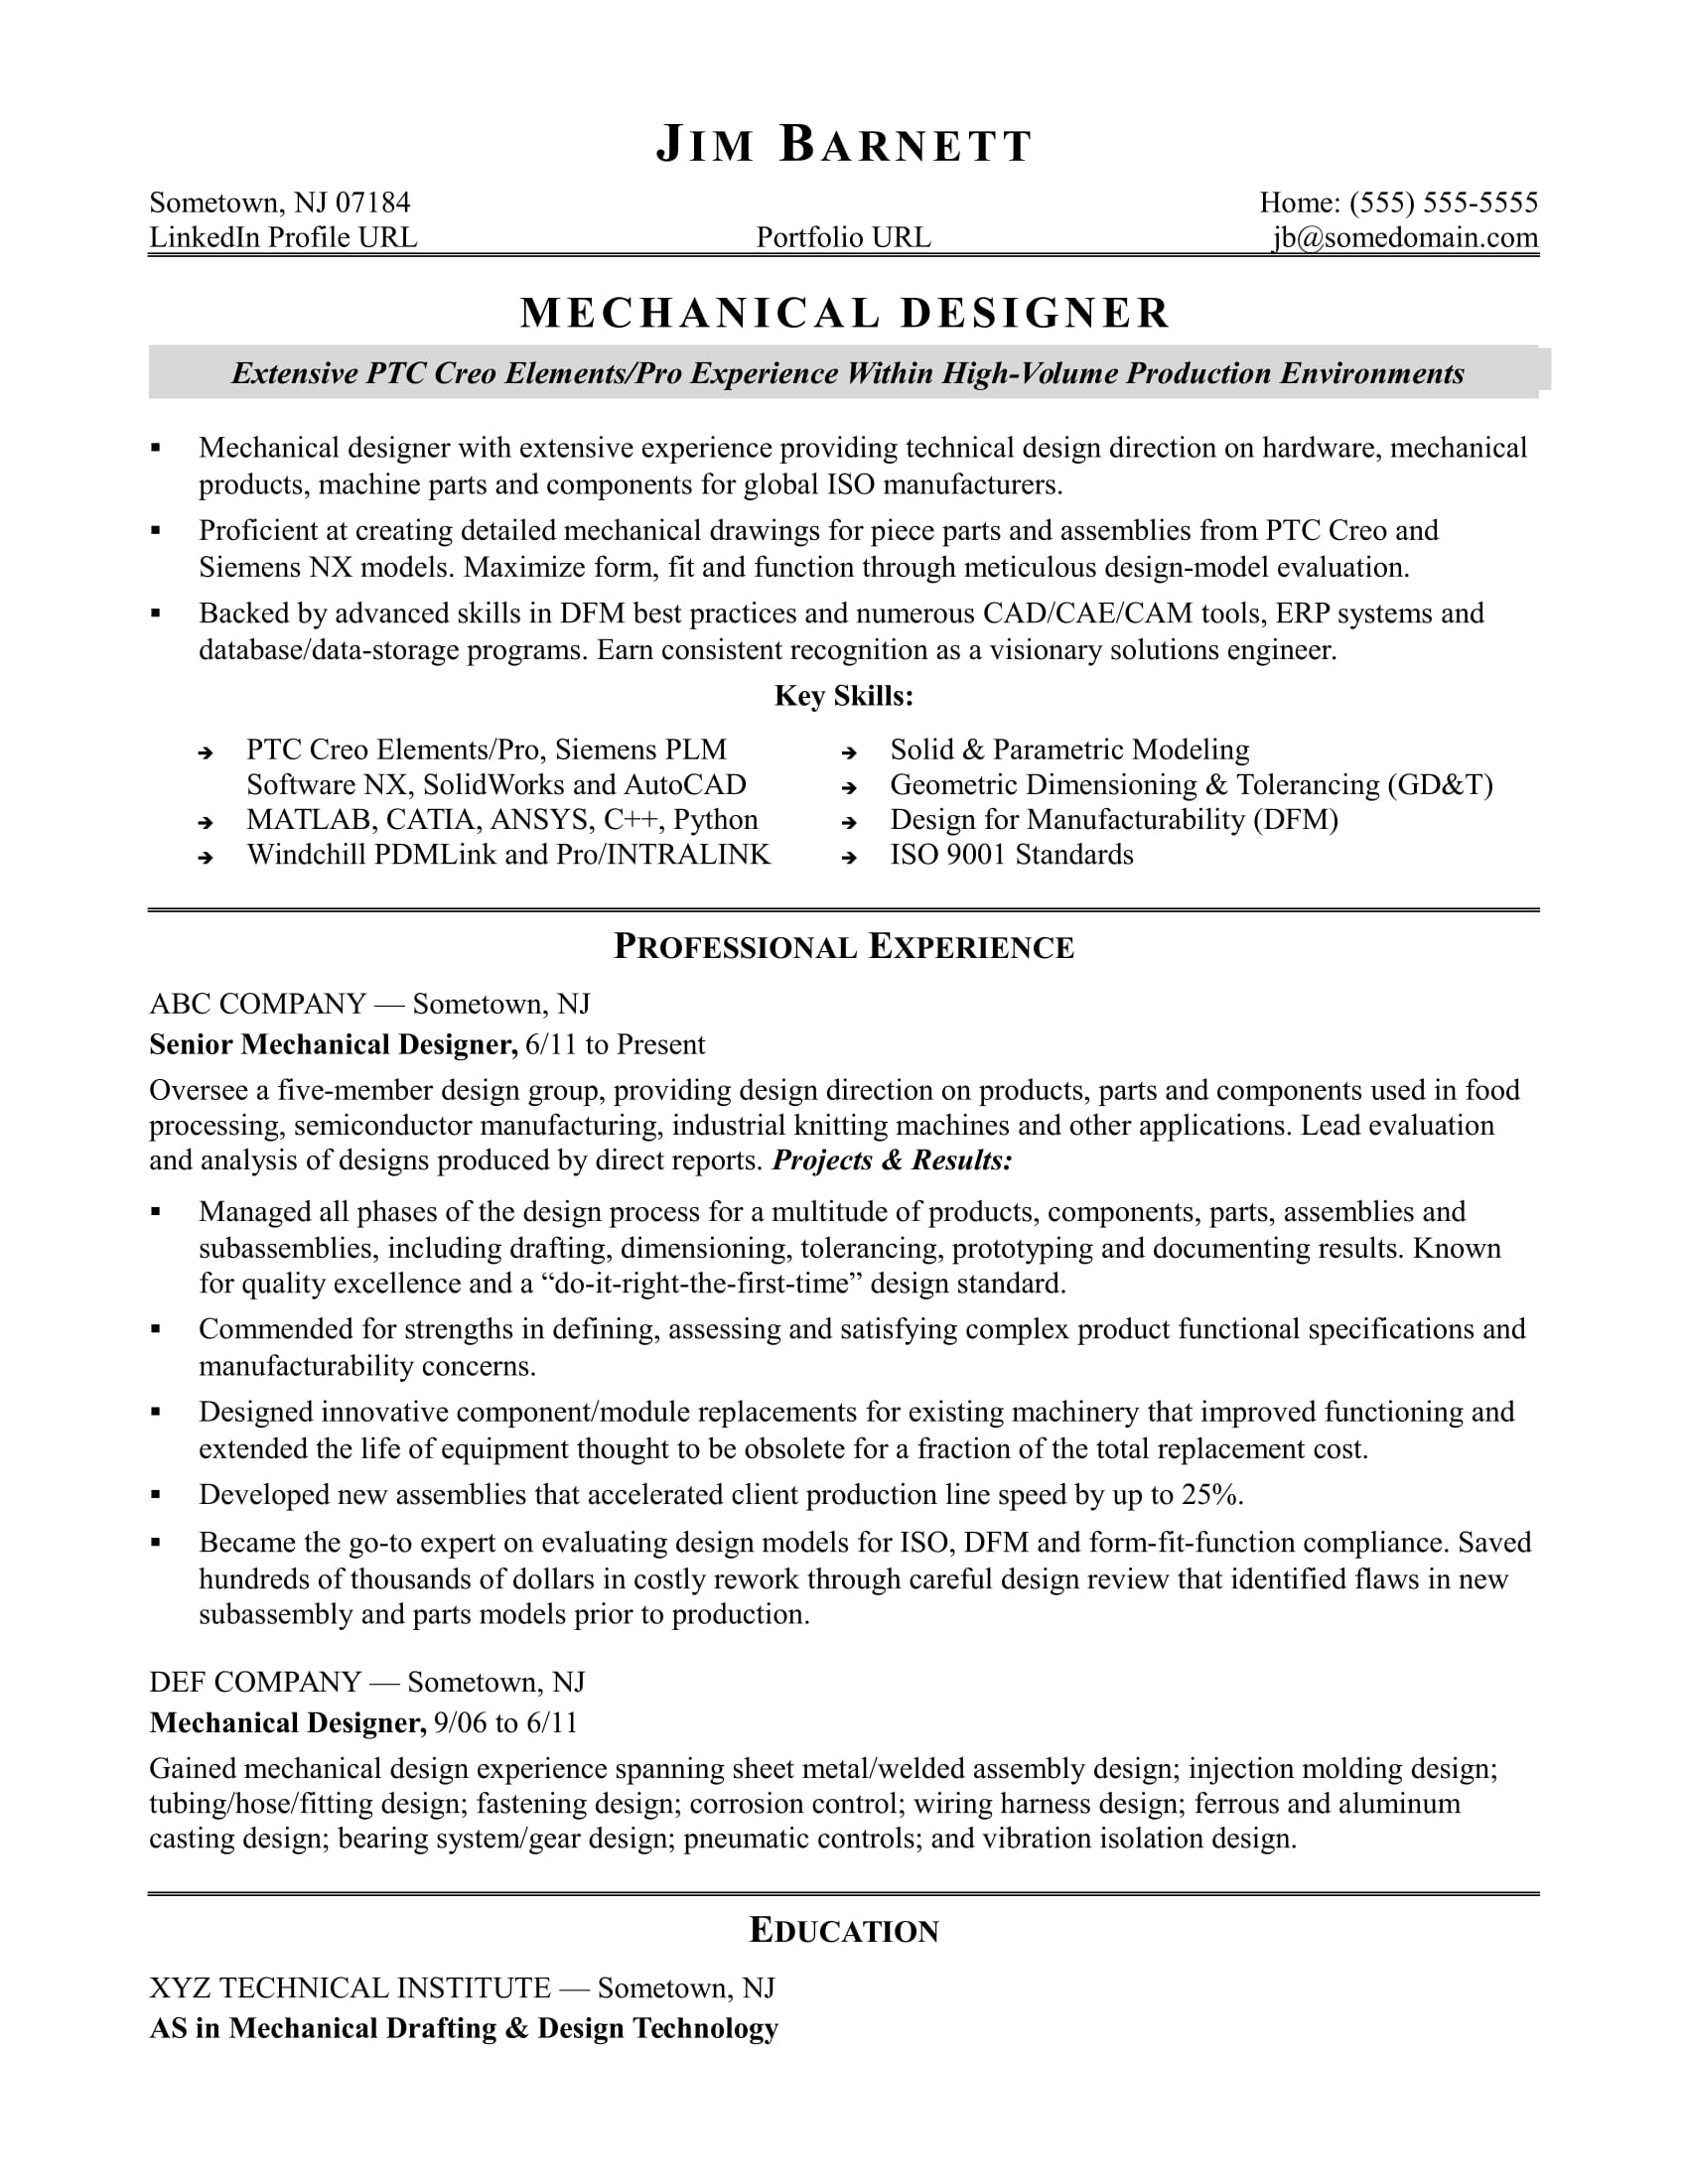 Delightful Sample Resume For An Experienced Mechanical Designer To Design Engineer Resume